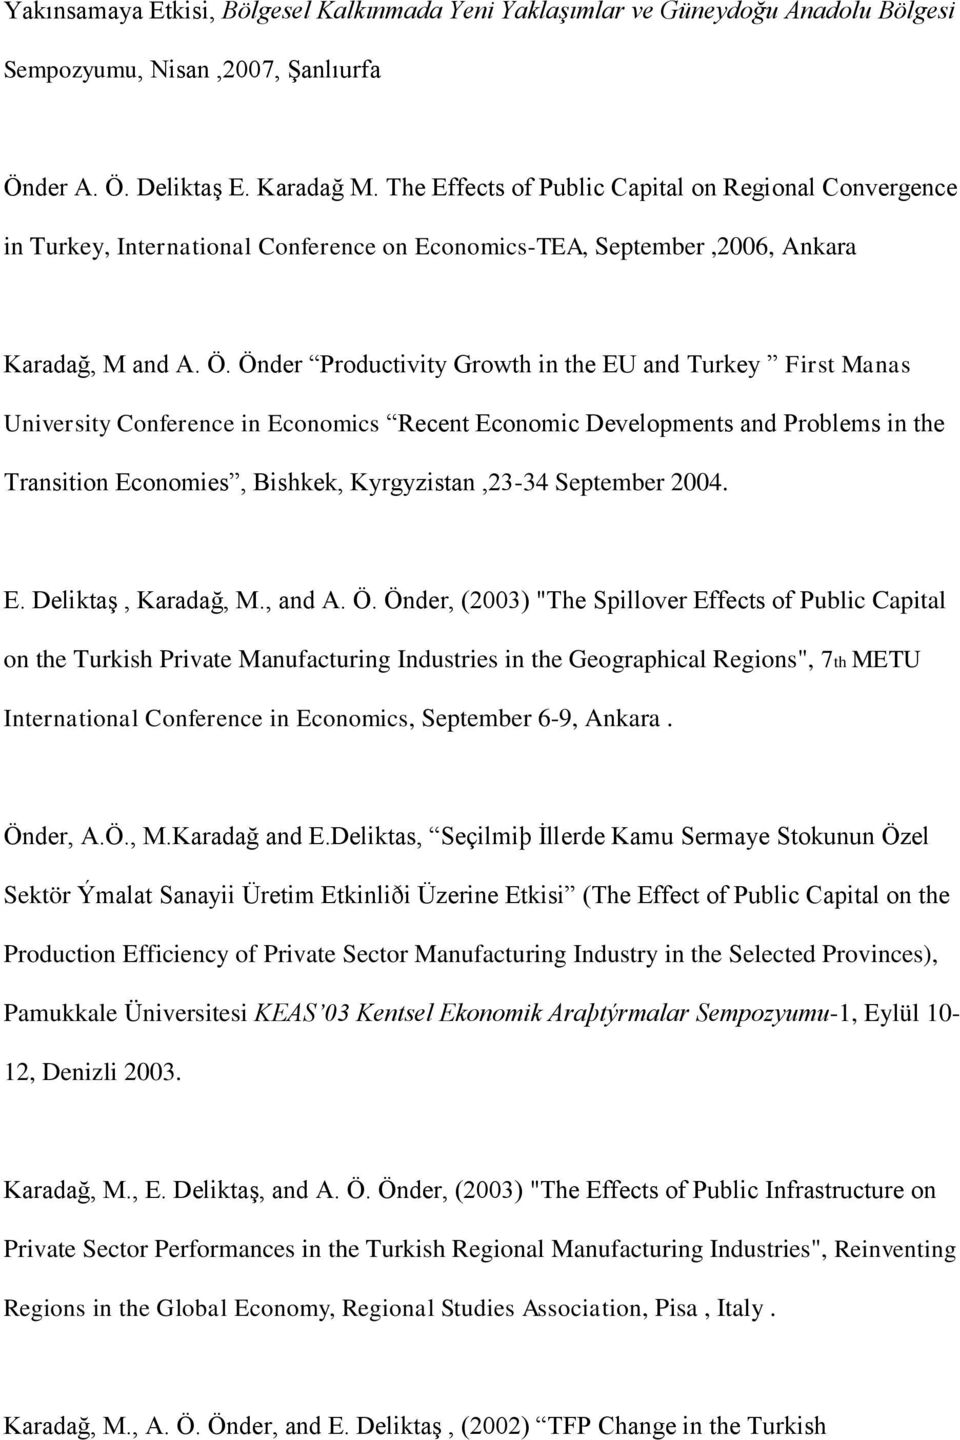 Önder Productivity Growth in the EU and Turkey First Manas University Conference in Economics Recent Economic Developments and Problems in the Transition Economies, Bishkek, Kyrgyzistan,23-34